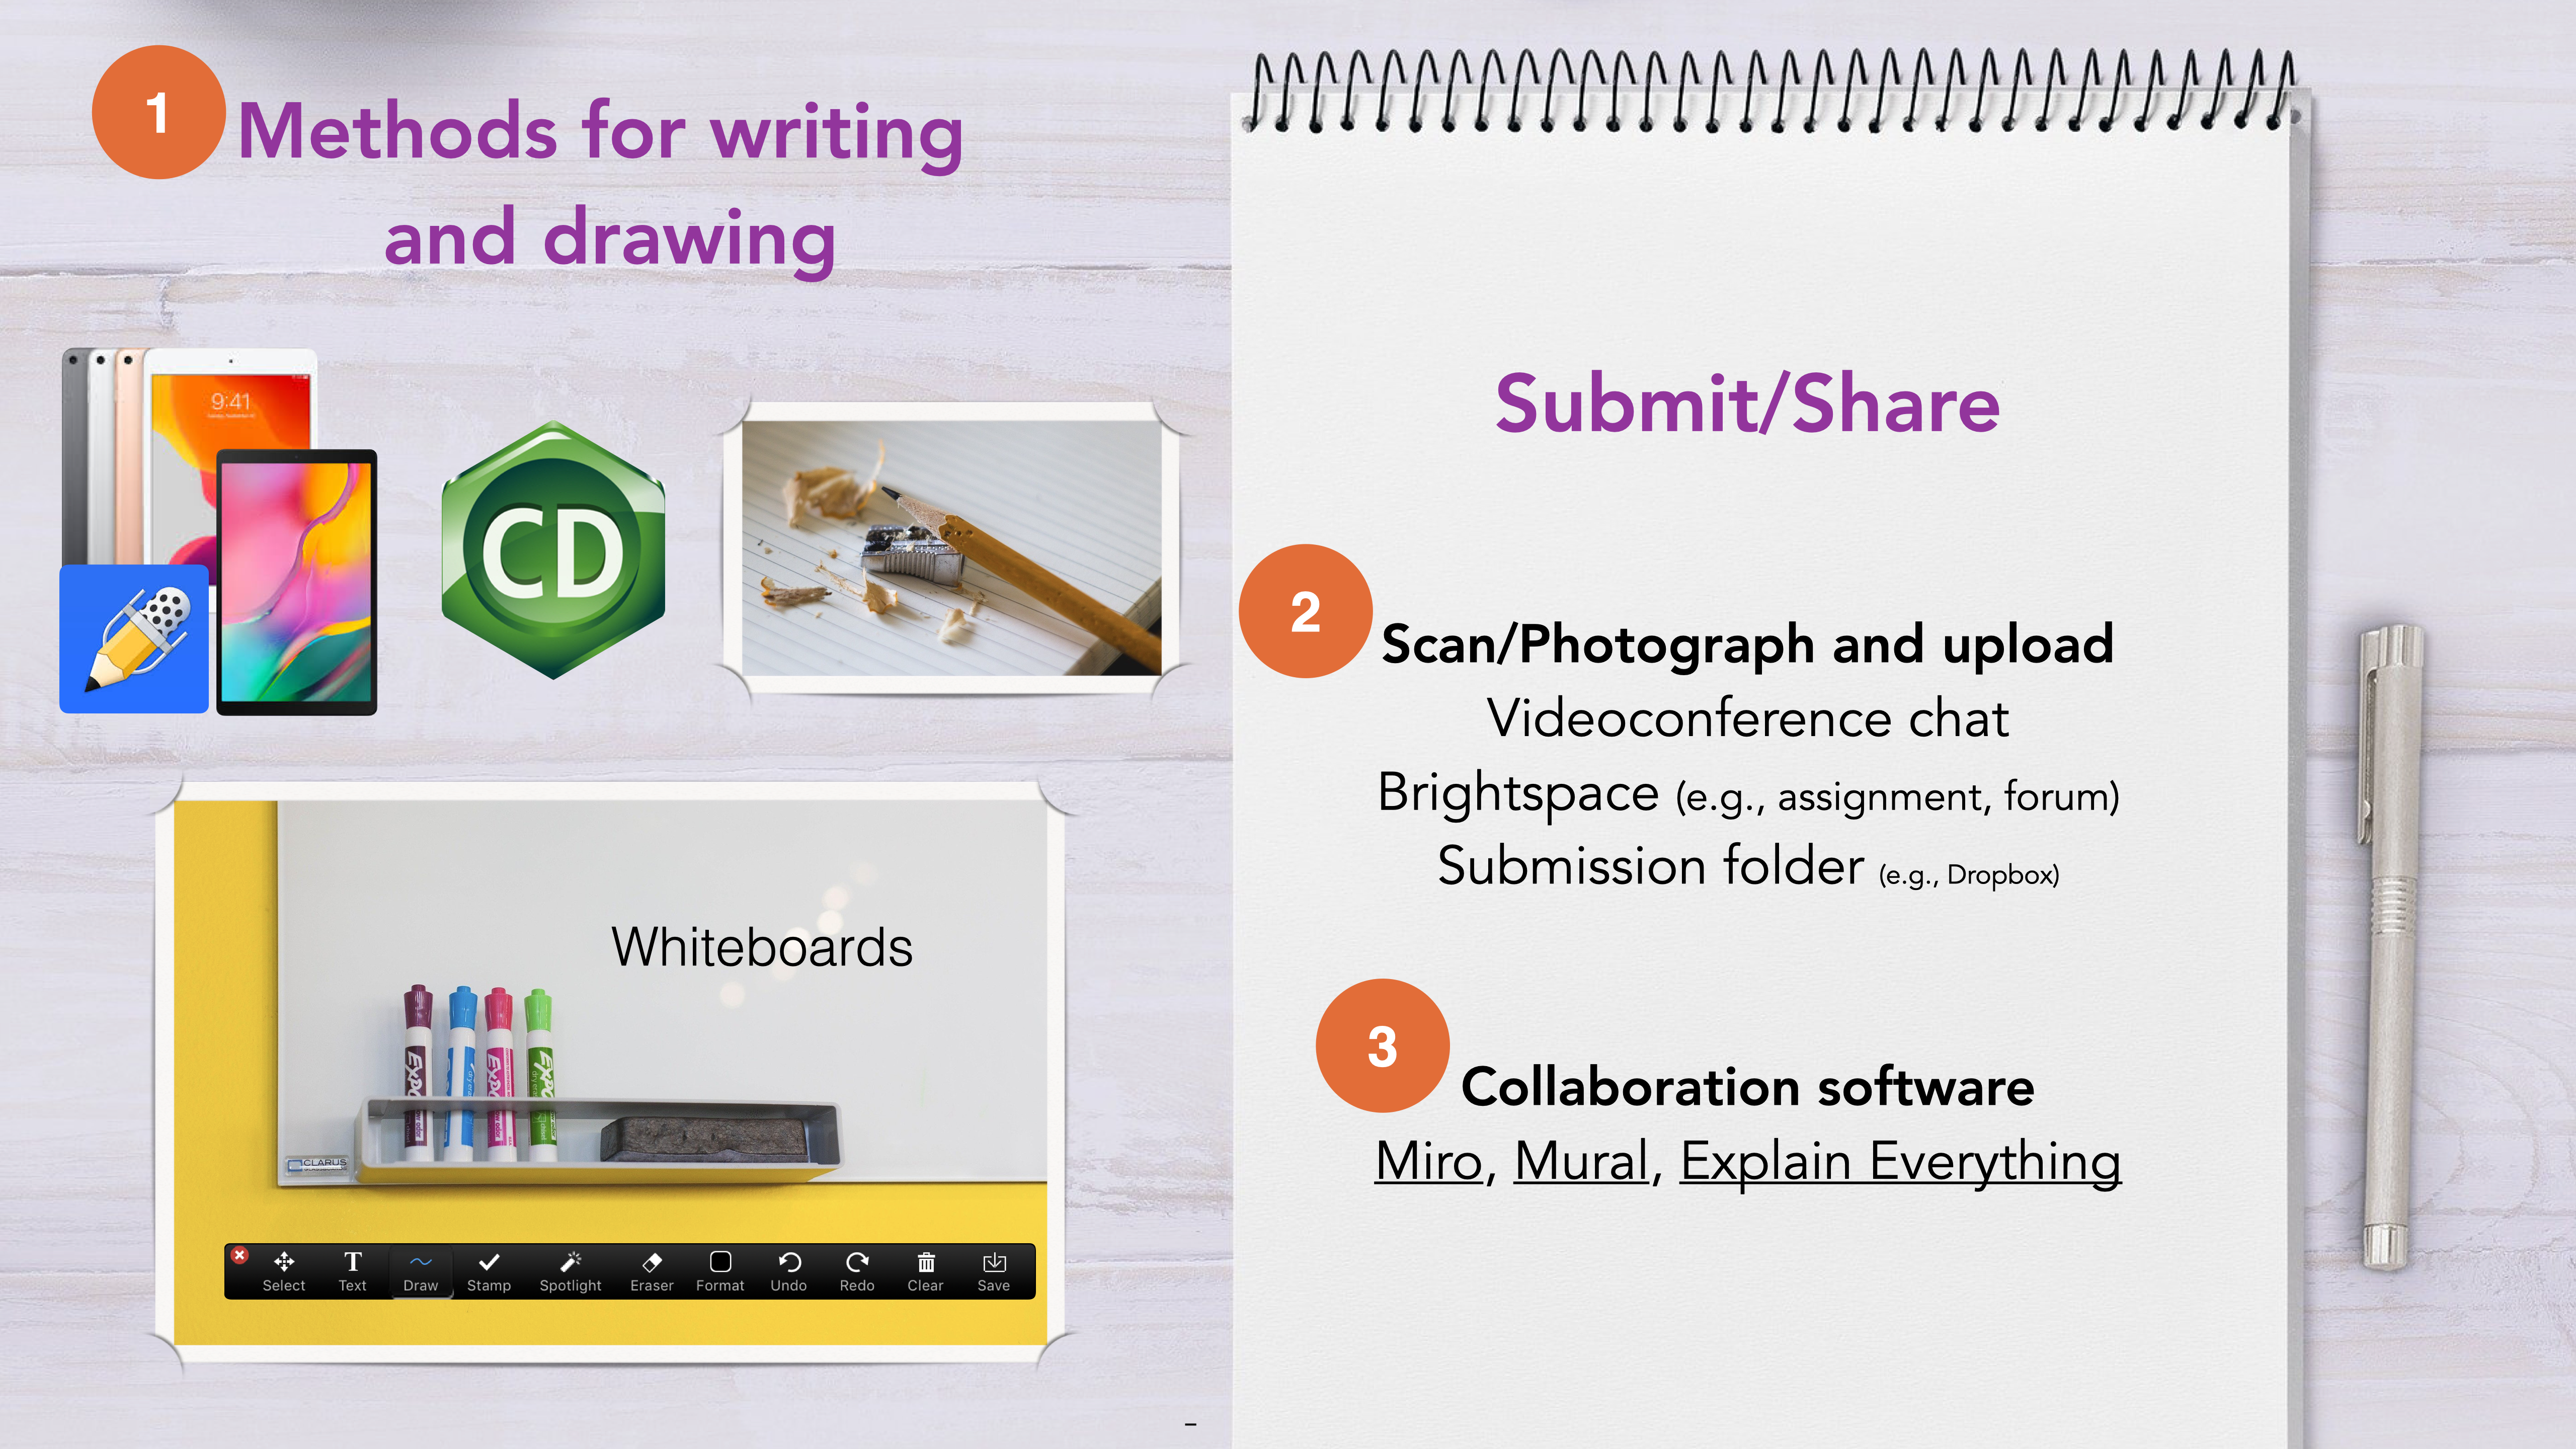 1. Methods for writing and drawing (tablet, ChemDraw, paper and pencil, whiteboards). 2. Scan/Photograph and upload, Videoconference chat, Brightspace (e.g., assignment, forum), Submission folder (e.g., Dropbox). 3. Collaboration software Miro, Mural, Explain Everything